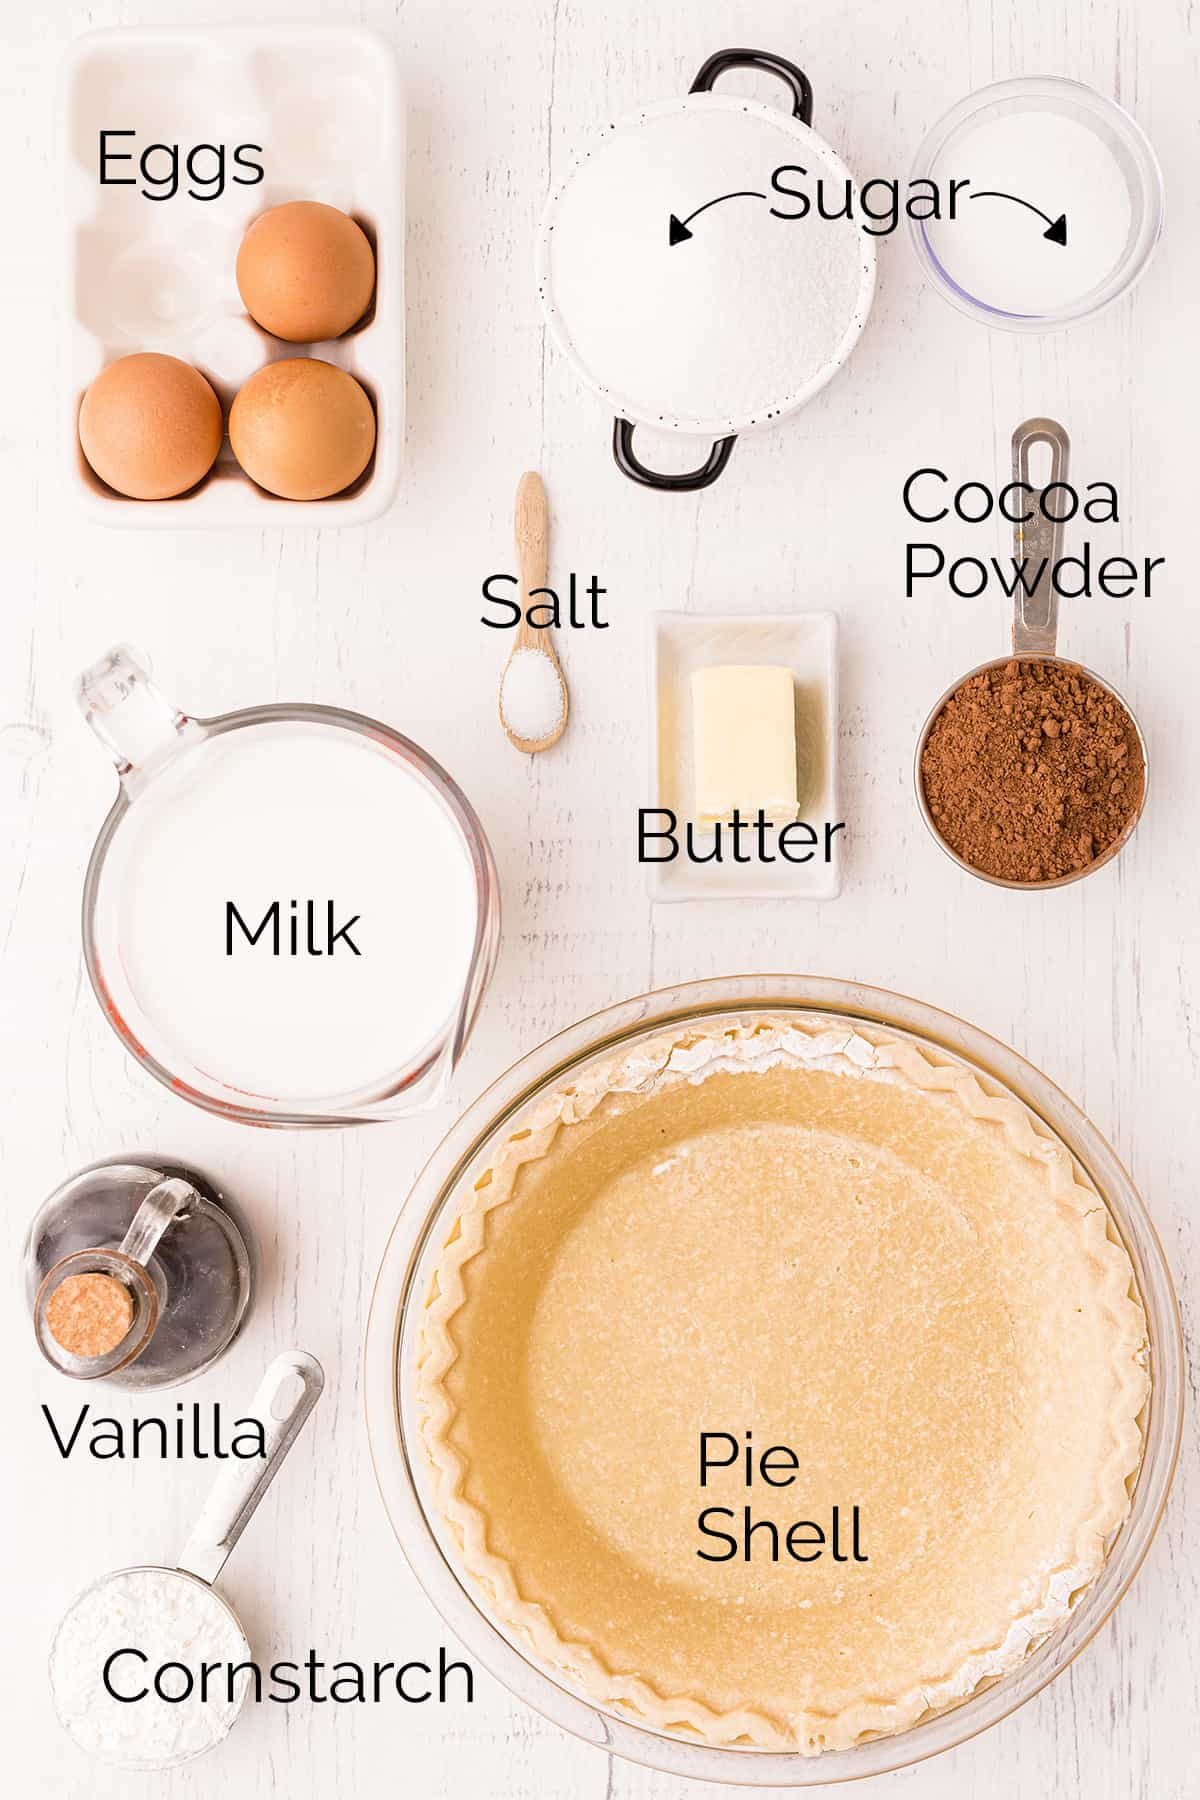 Ingredients needed for the recipe.